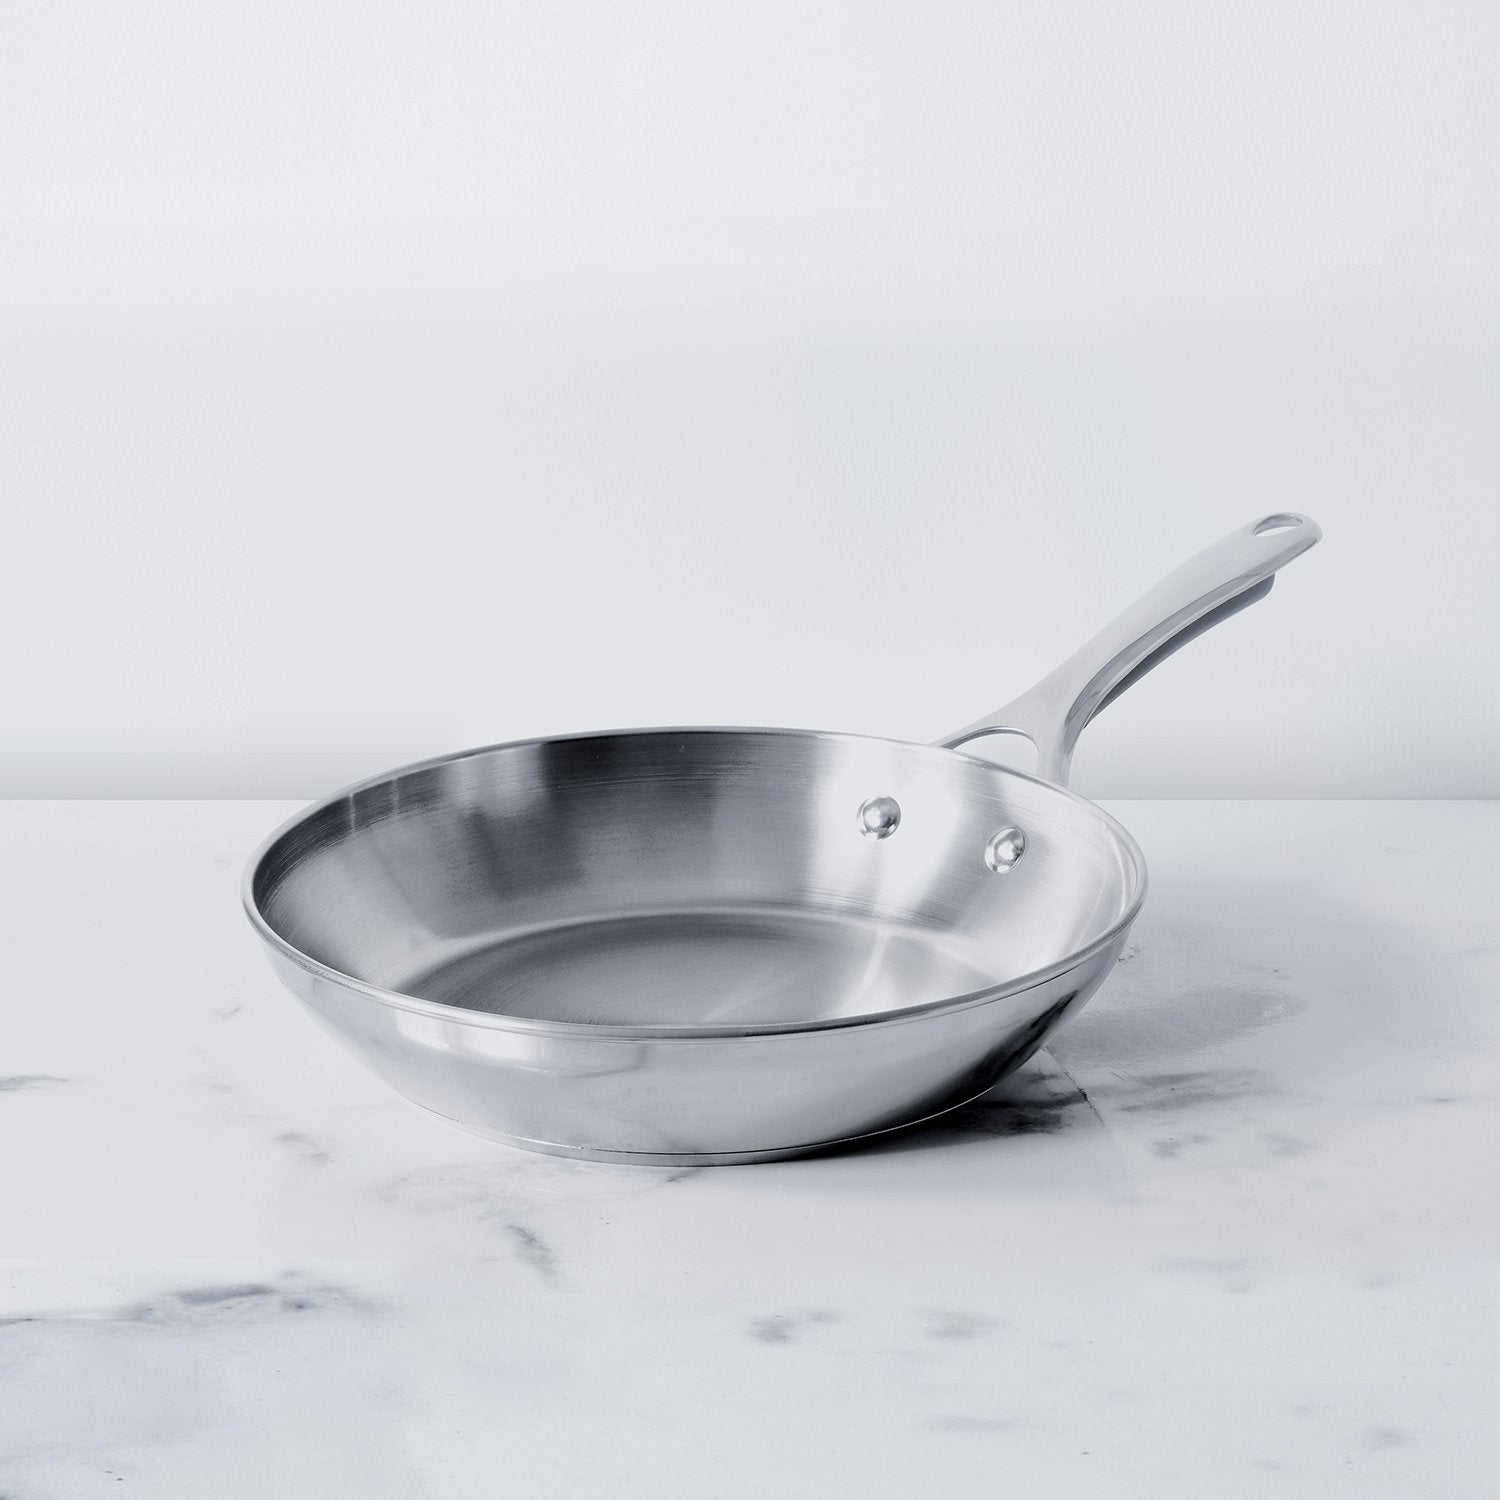 Meyer Select Stainless Steel Frypan 26cm (Induction & Gas Compatible) - Pots and Pans